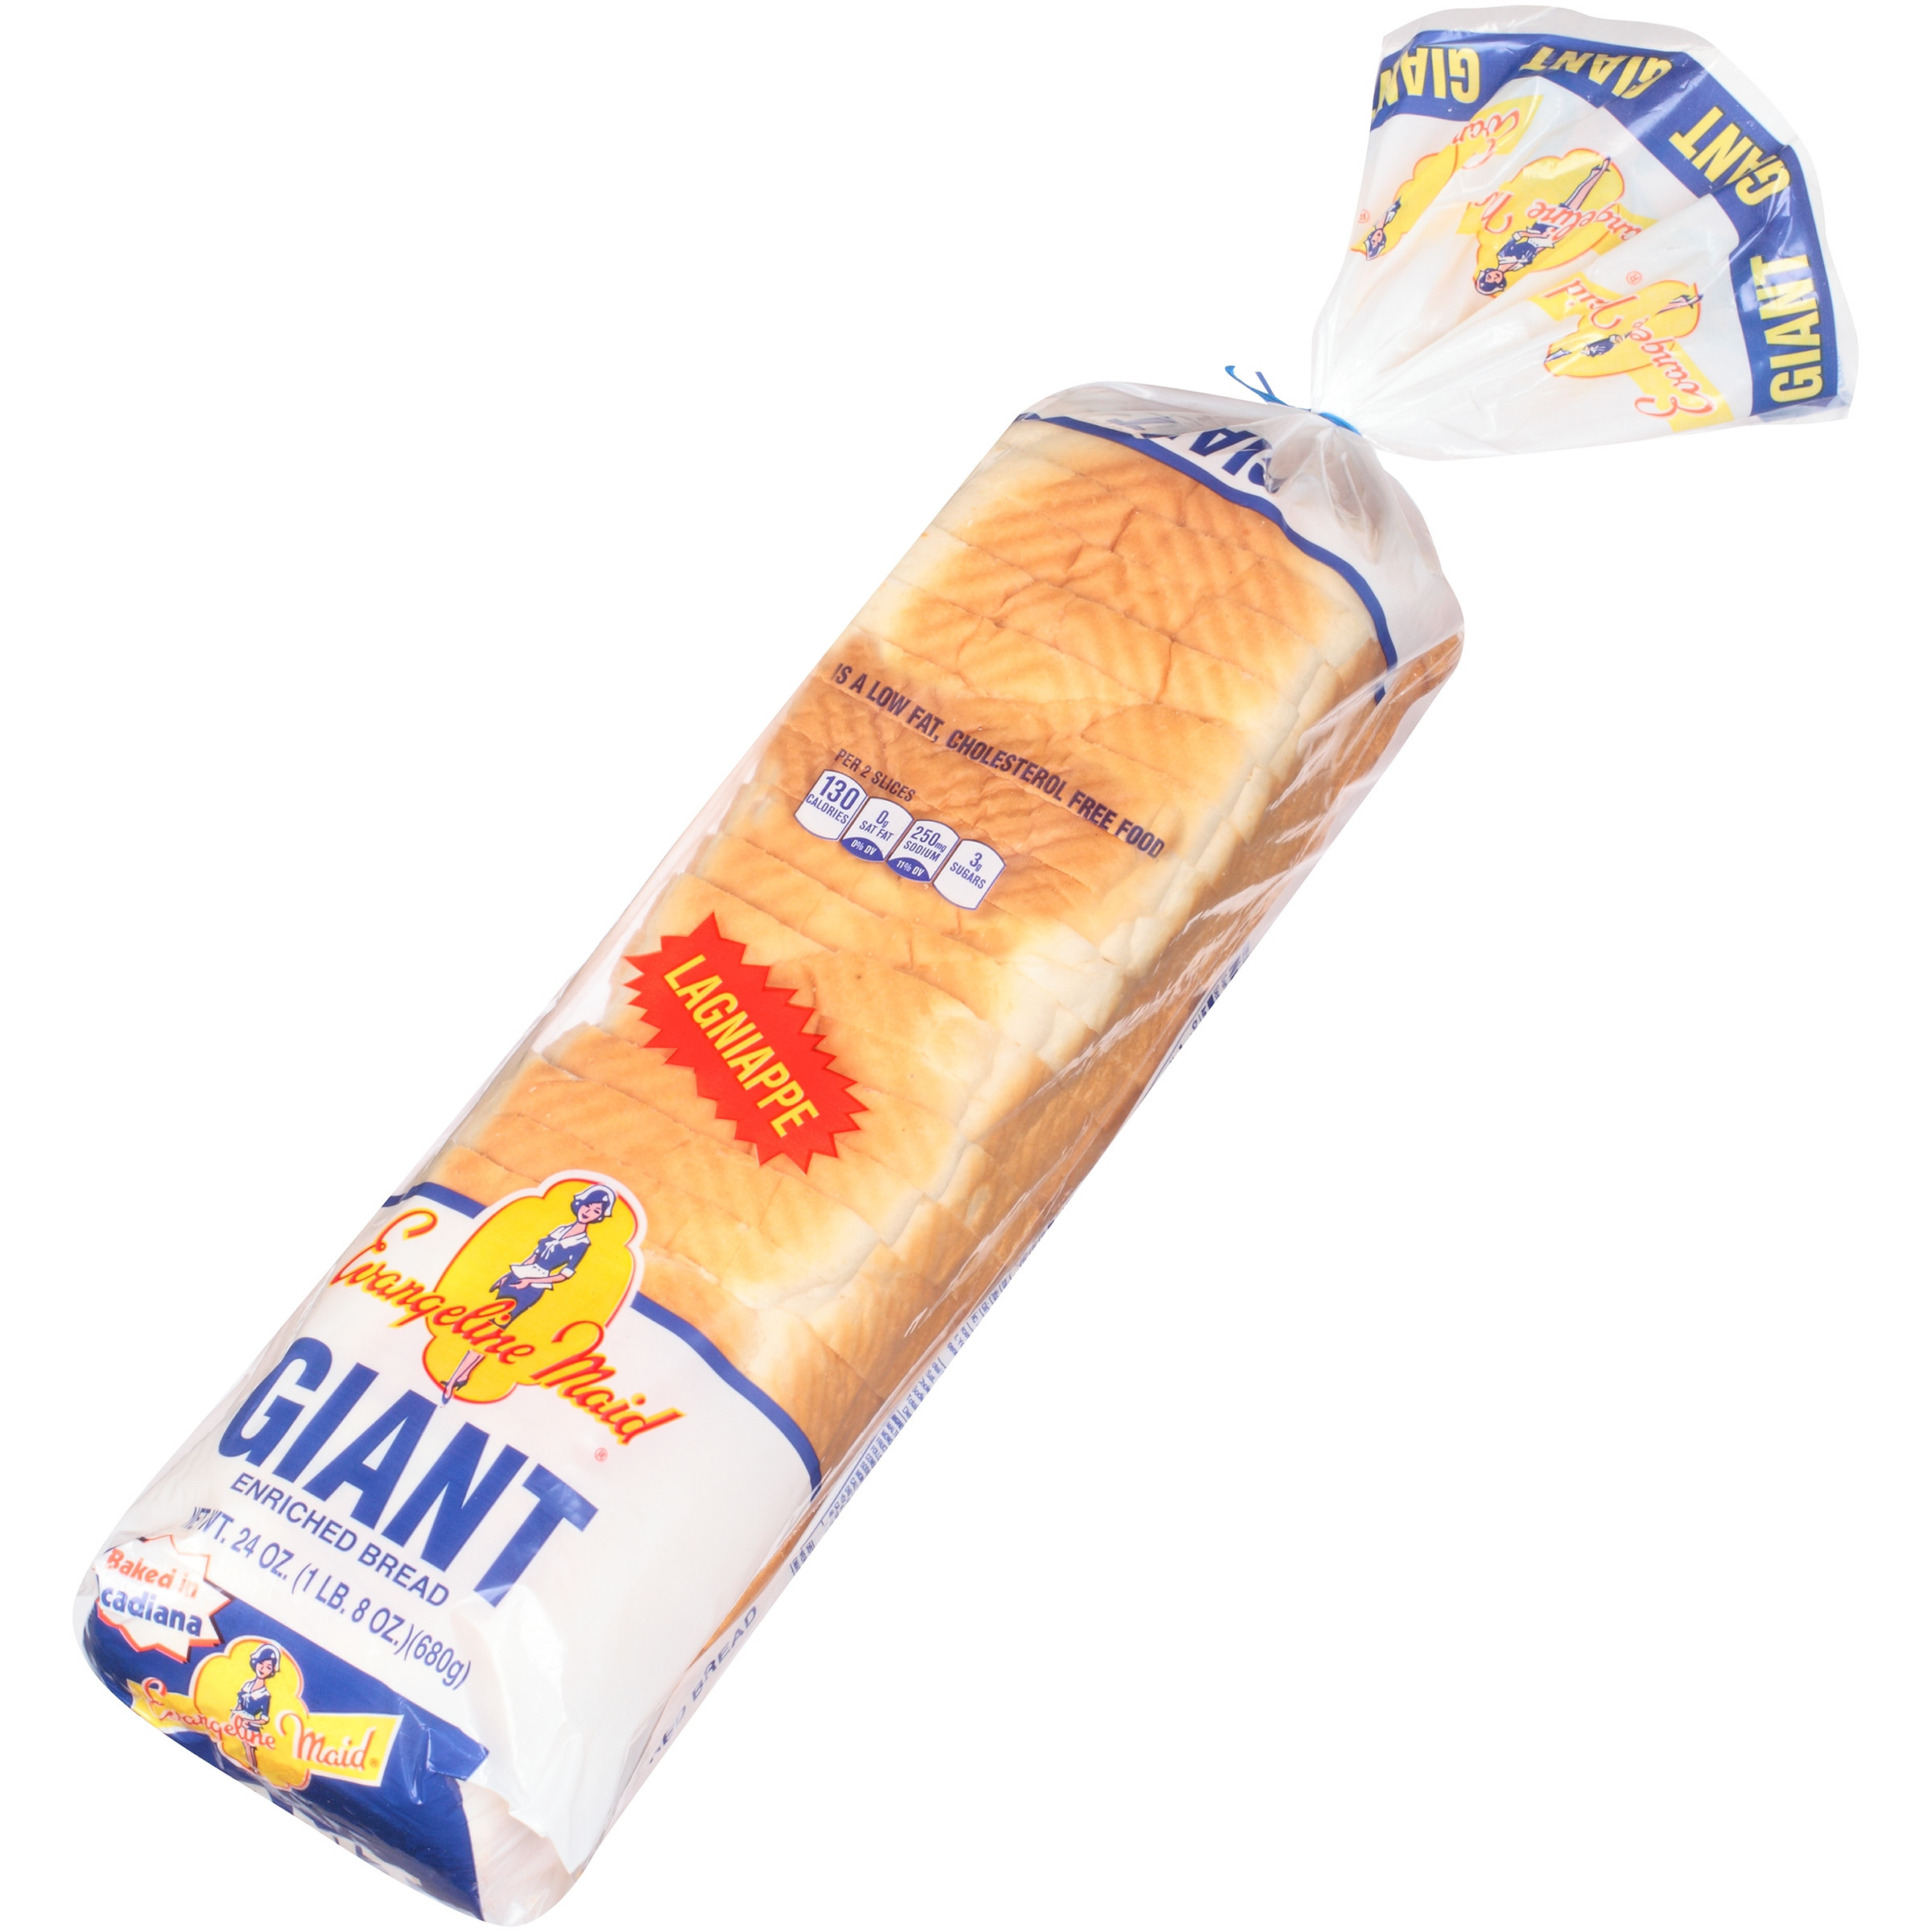 Healthy Life Bread Walmart  low sodium bread at walmart